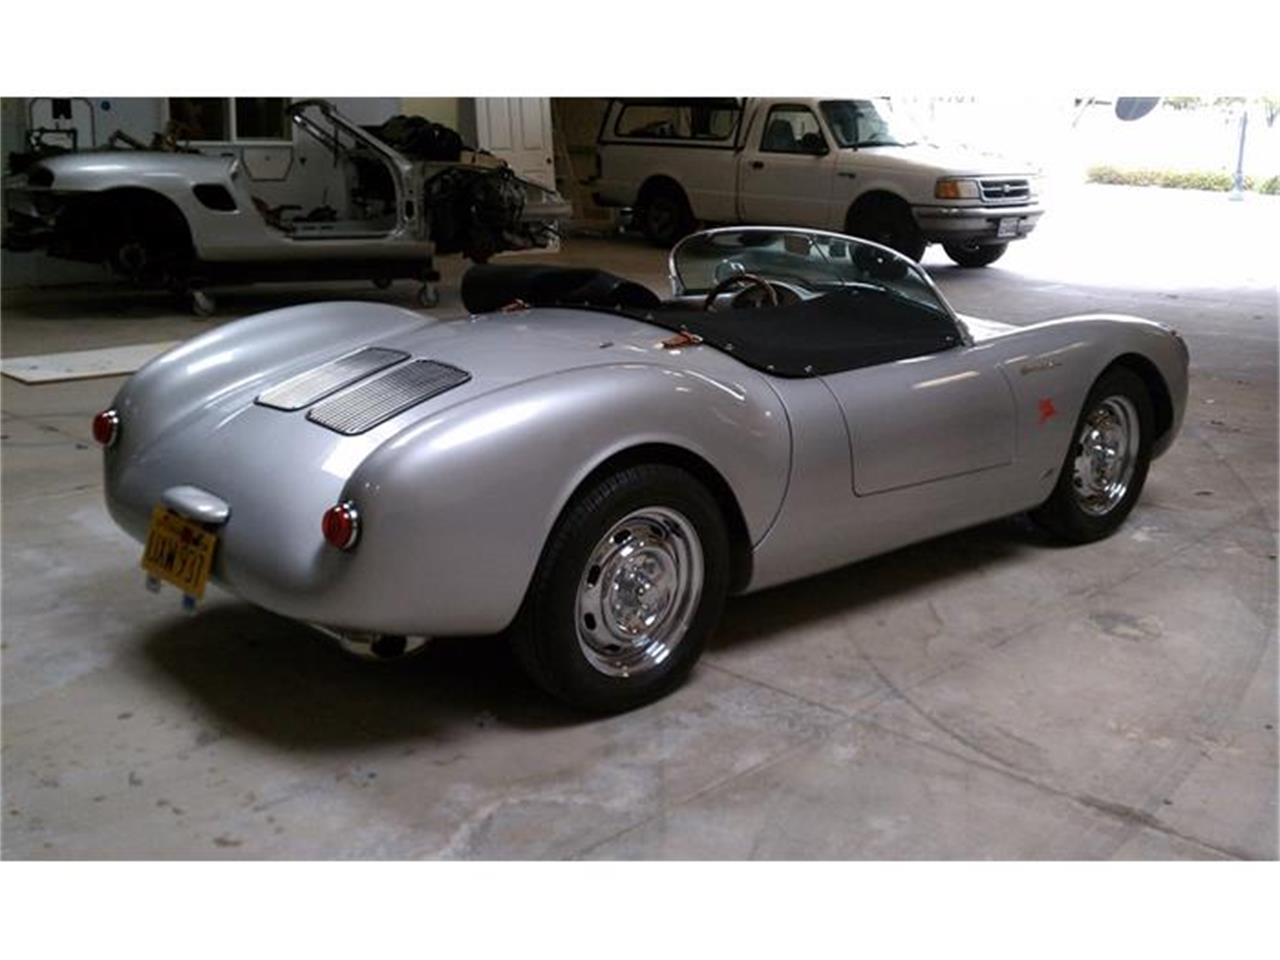 Large Picture of Classic '55 Porsche 550 Spyder Replica - $35,950.00 - C4HF